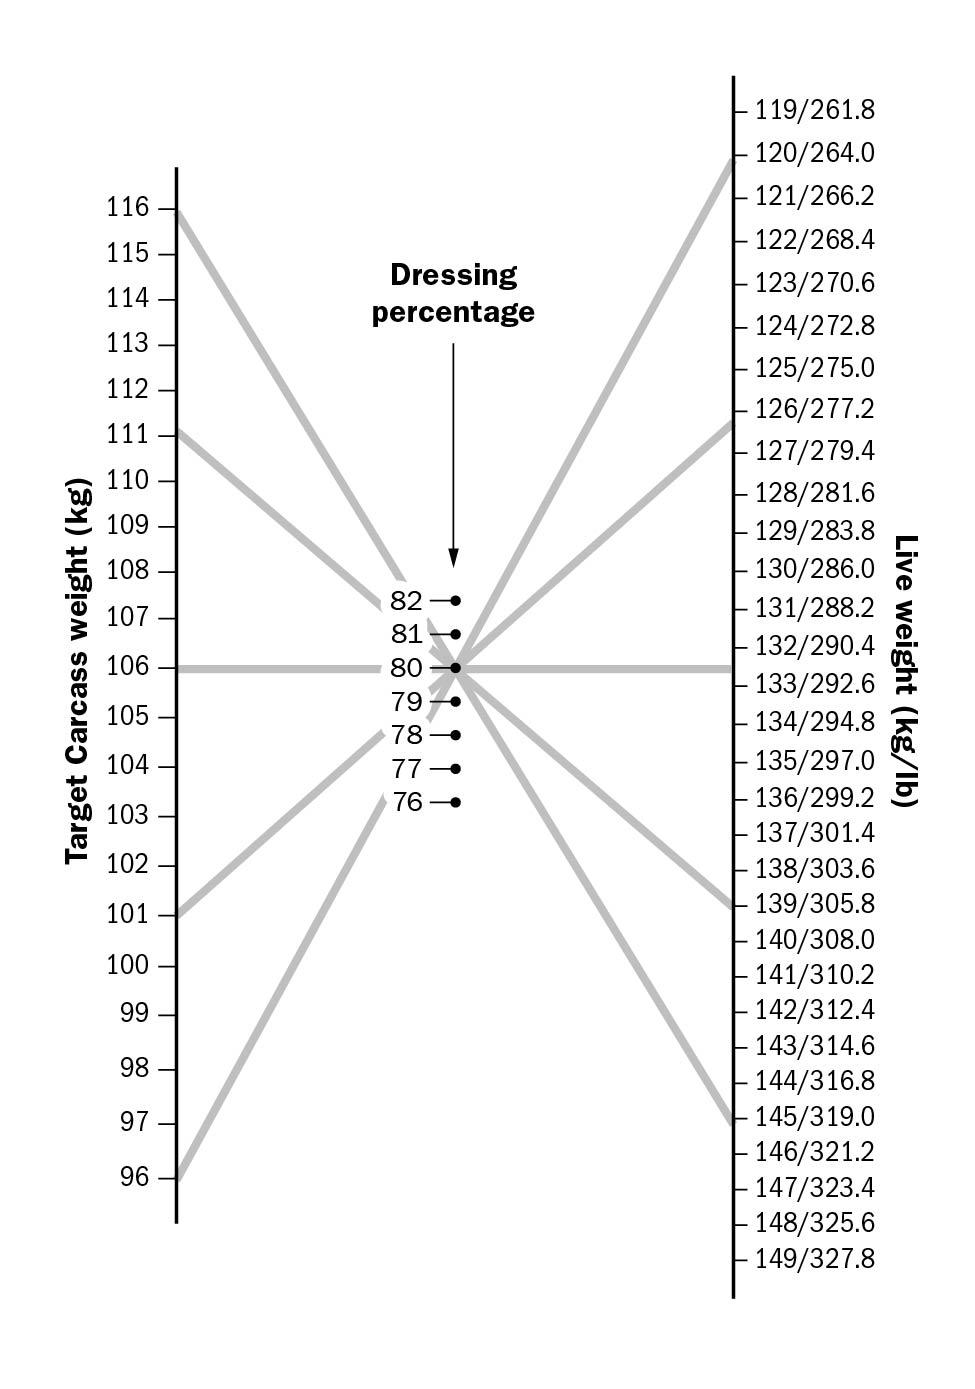 Figure 1. A rectangular graph showing convergence of live weight and target weight relative to dressing percentage. The left axis of the graph shows target carcass weight in kilograms in ascending order from bottom to top, from 96 to 116 kg. Live weight is shown in kilograms and pounds along the right axis, in descending order from bottom to top, from 149 to 119 kg (327.8 to 261.8 lb). Dressing percentage numbers are in the centre of the graph ranging in ascending order from bottom to top from 76 to 82. Five lines are draw from various points on the left hand side of the graph to the right hand side of the graph showing various options for meeting the target dressing percentage.